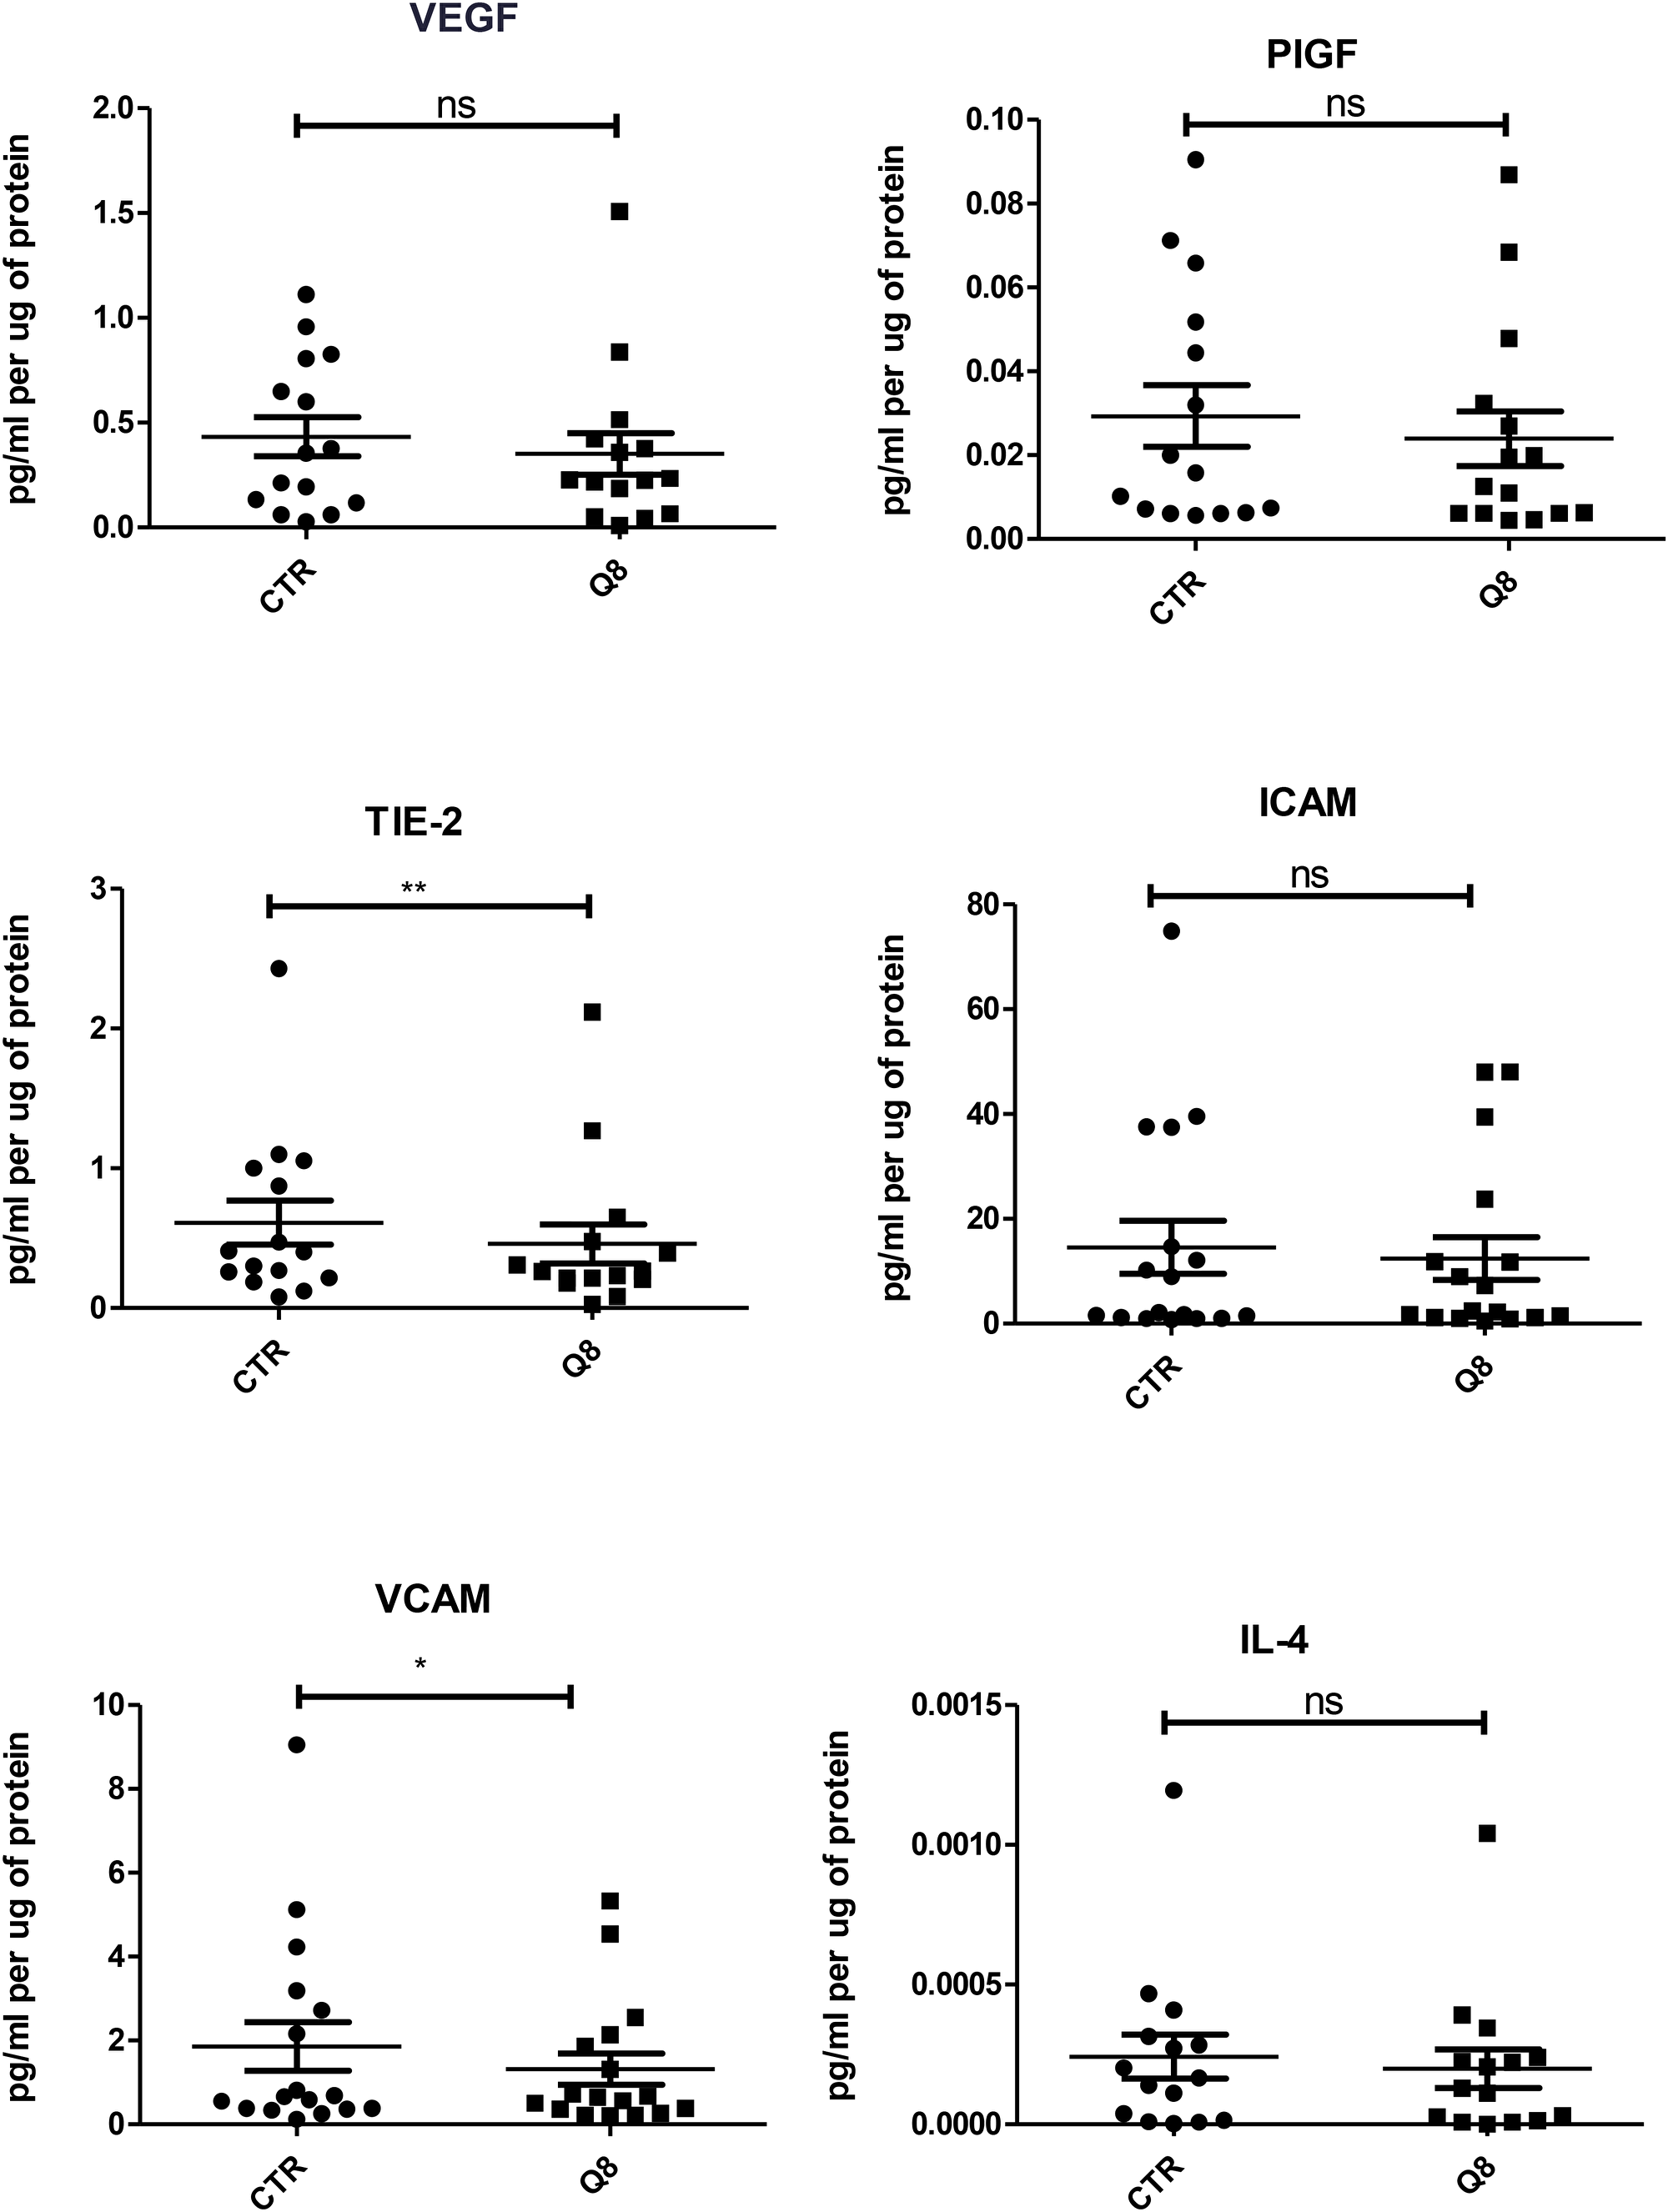 ELISA of tumour conditioned media from patient samples showing 72 hr treatment of 10 uM Q8 significantly reduces the expression of the angiogenic marker TIE-2 and the adhesion molecule VCAM compared to control (0.1% DMSO).